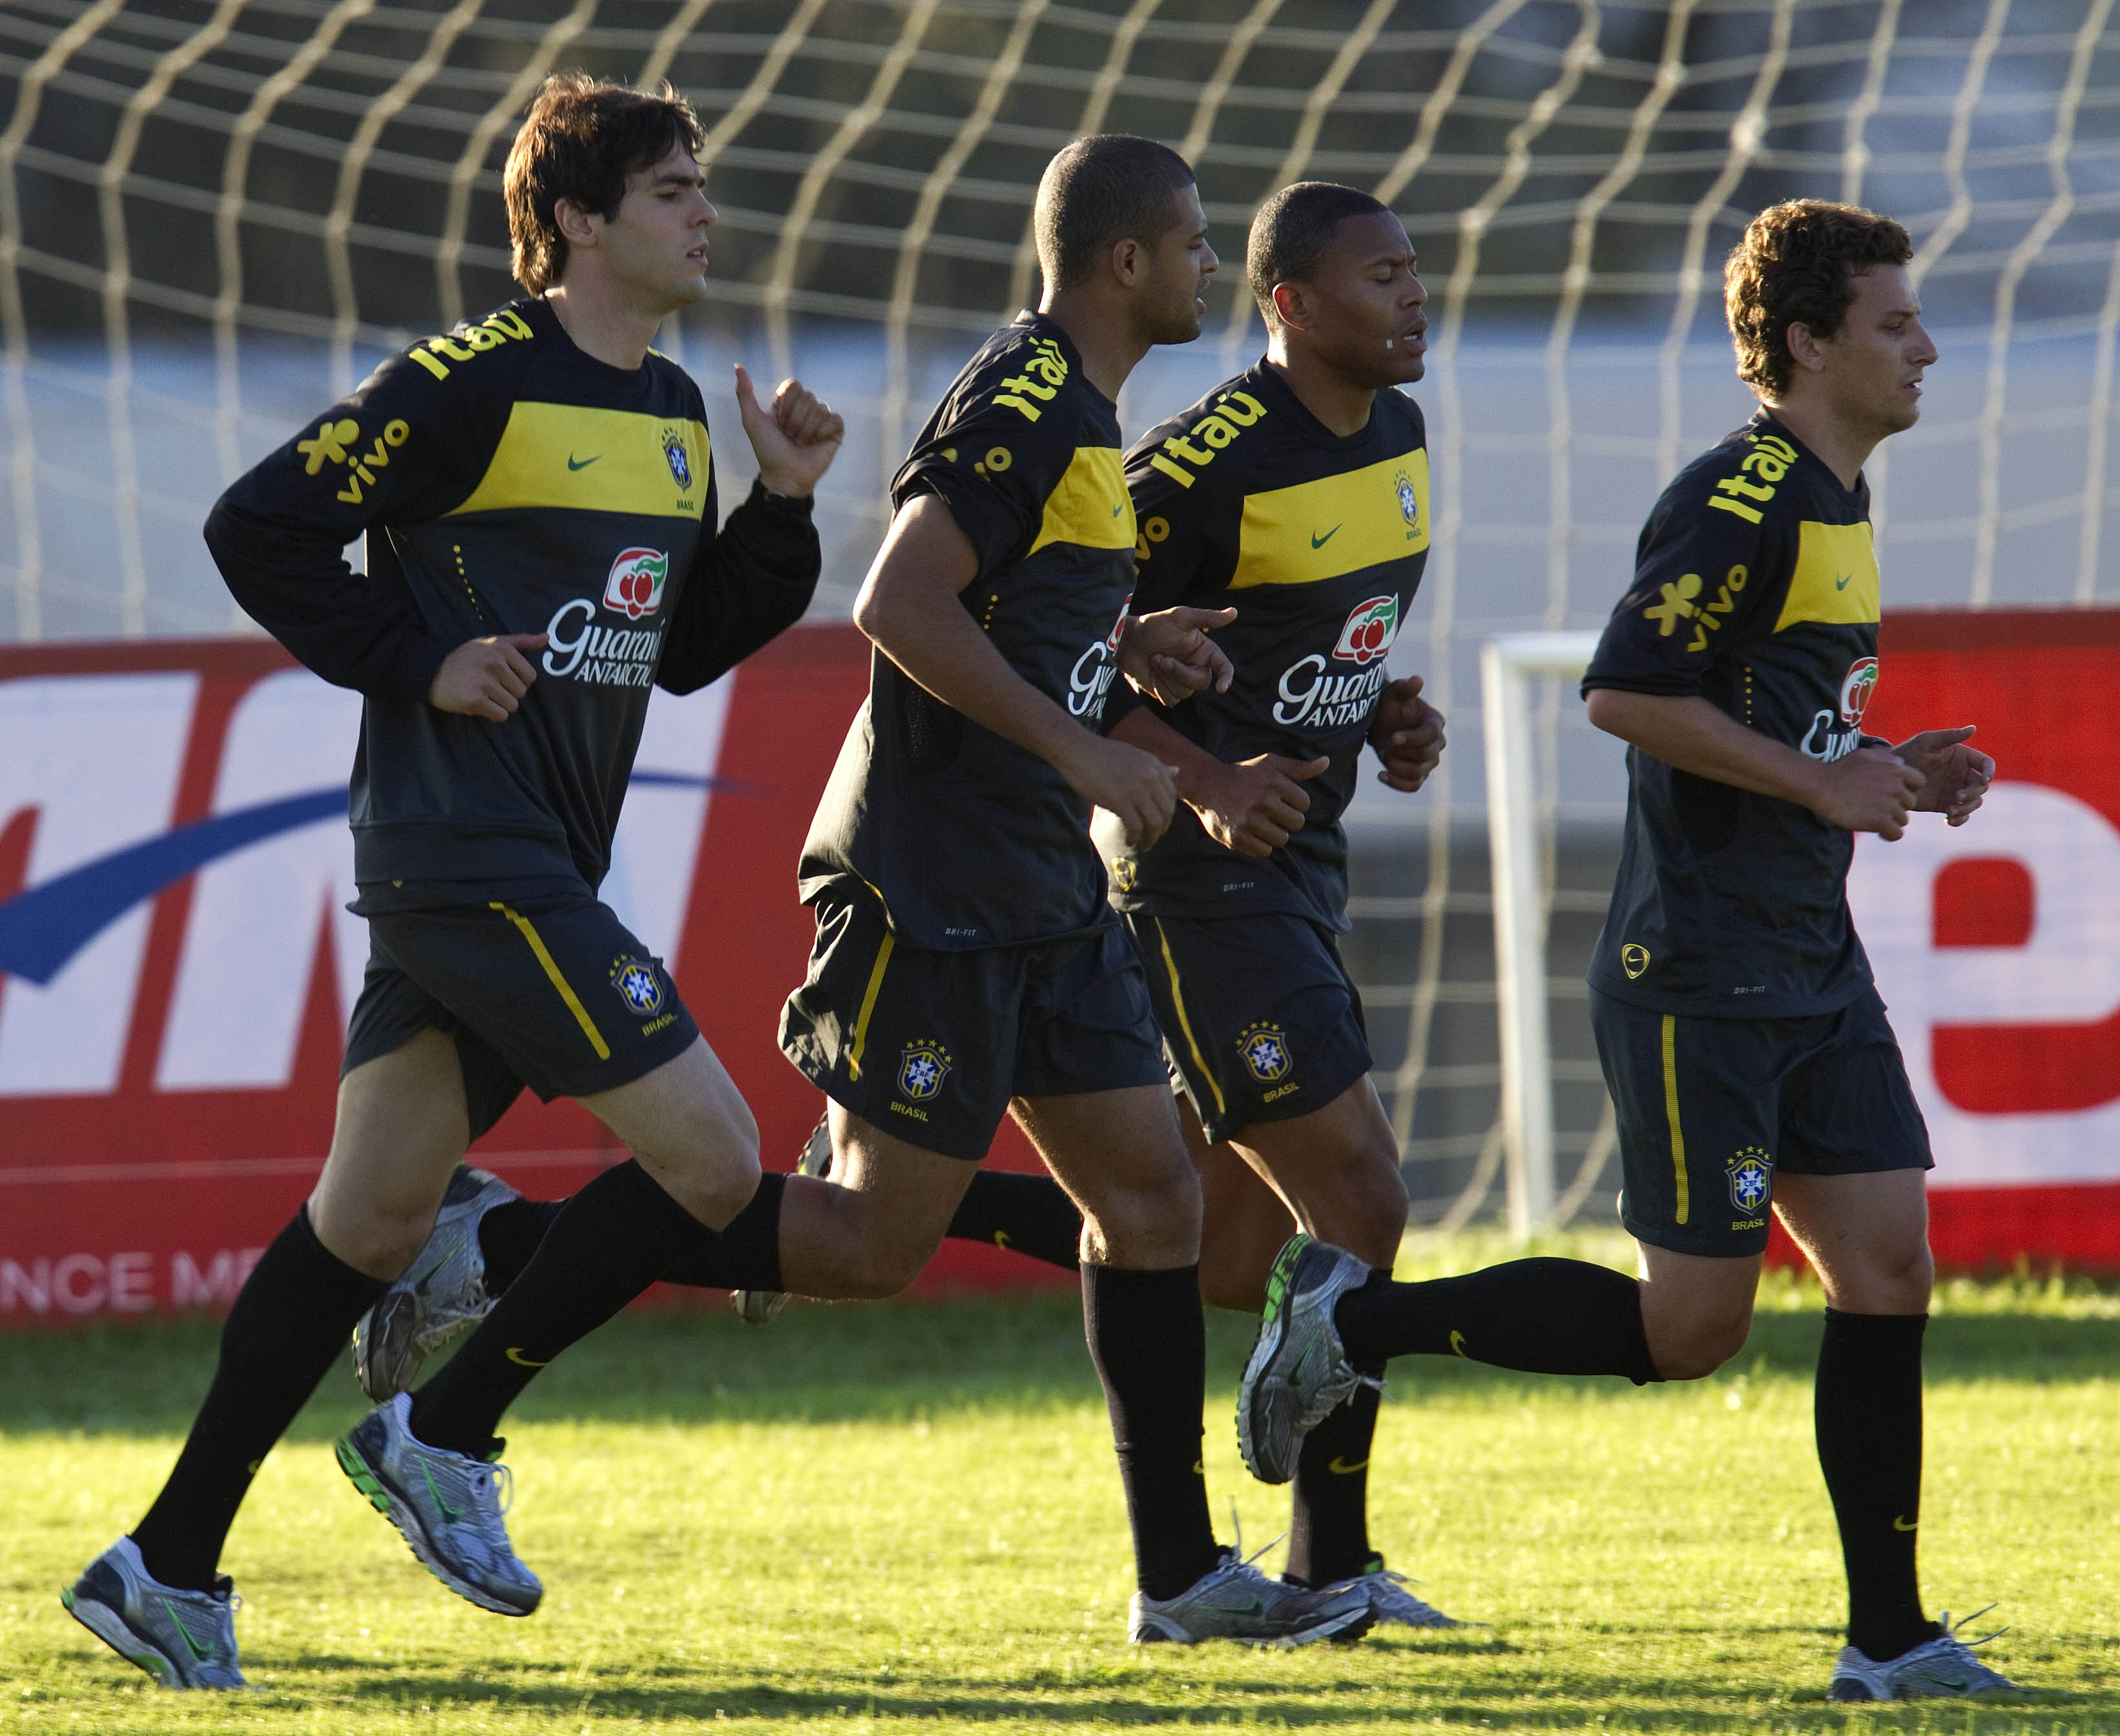 Brazil's soccer players, from left, Kaka, Felipe Melo, Julio Baptista and Elano train during a practice session in preparation for the upcoming South ...